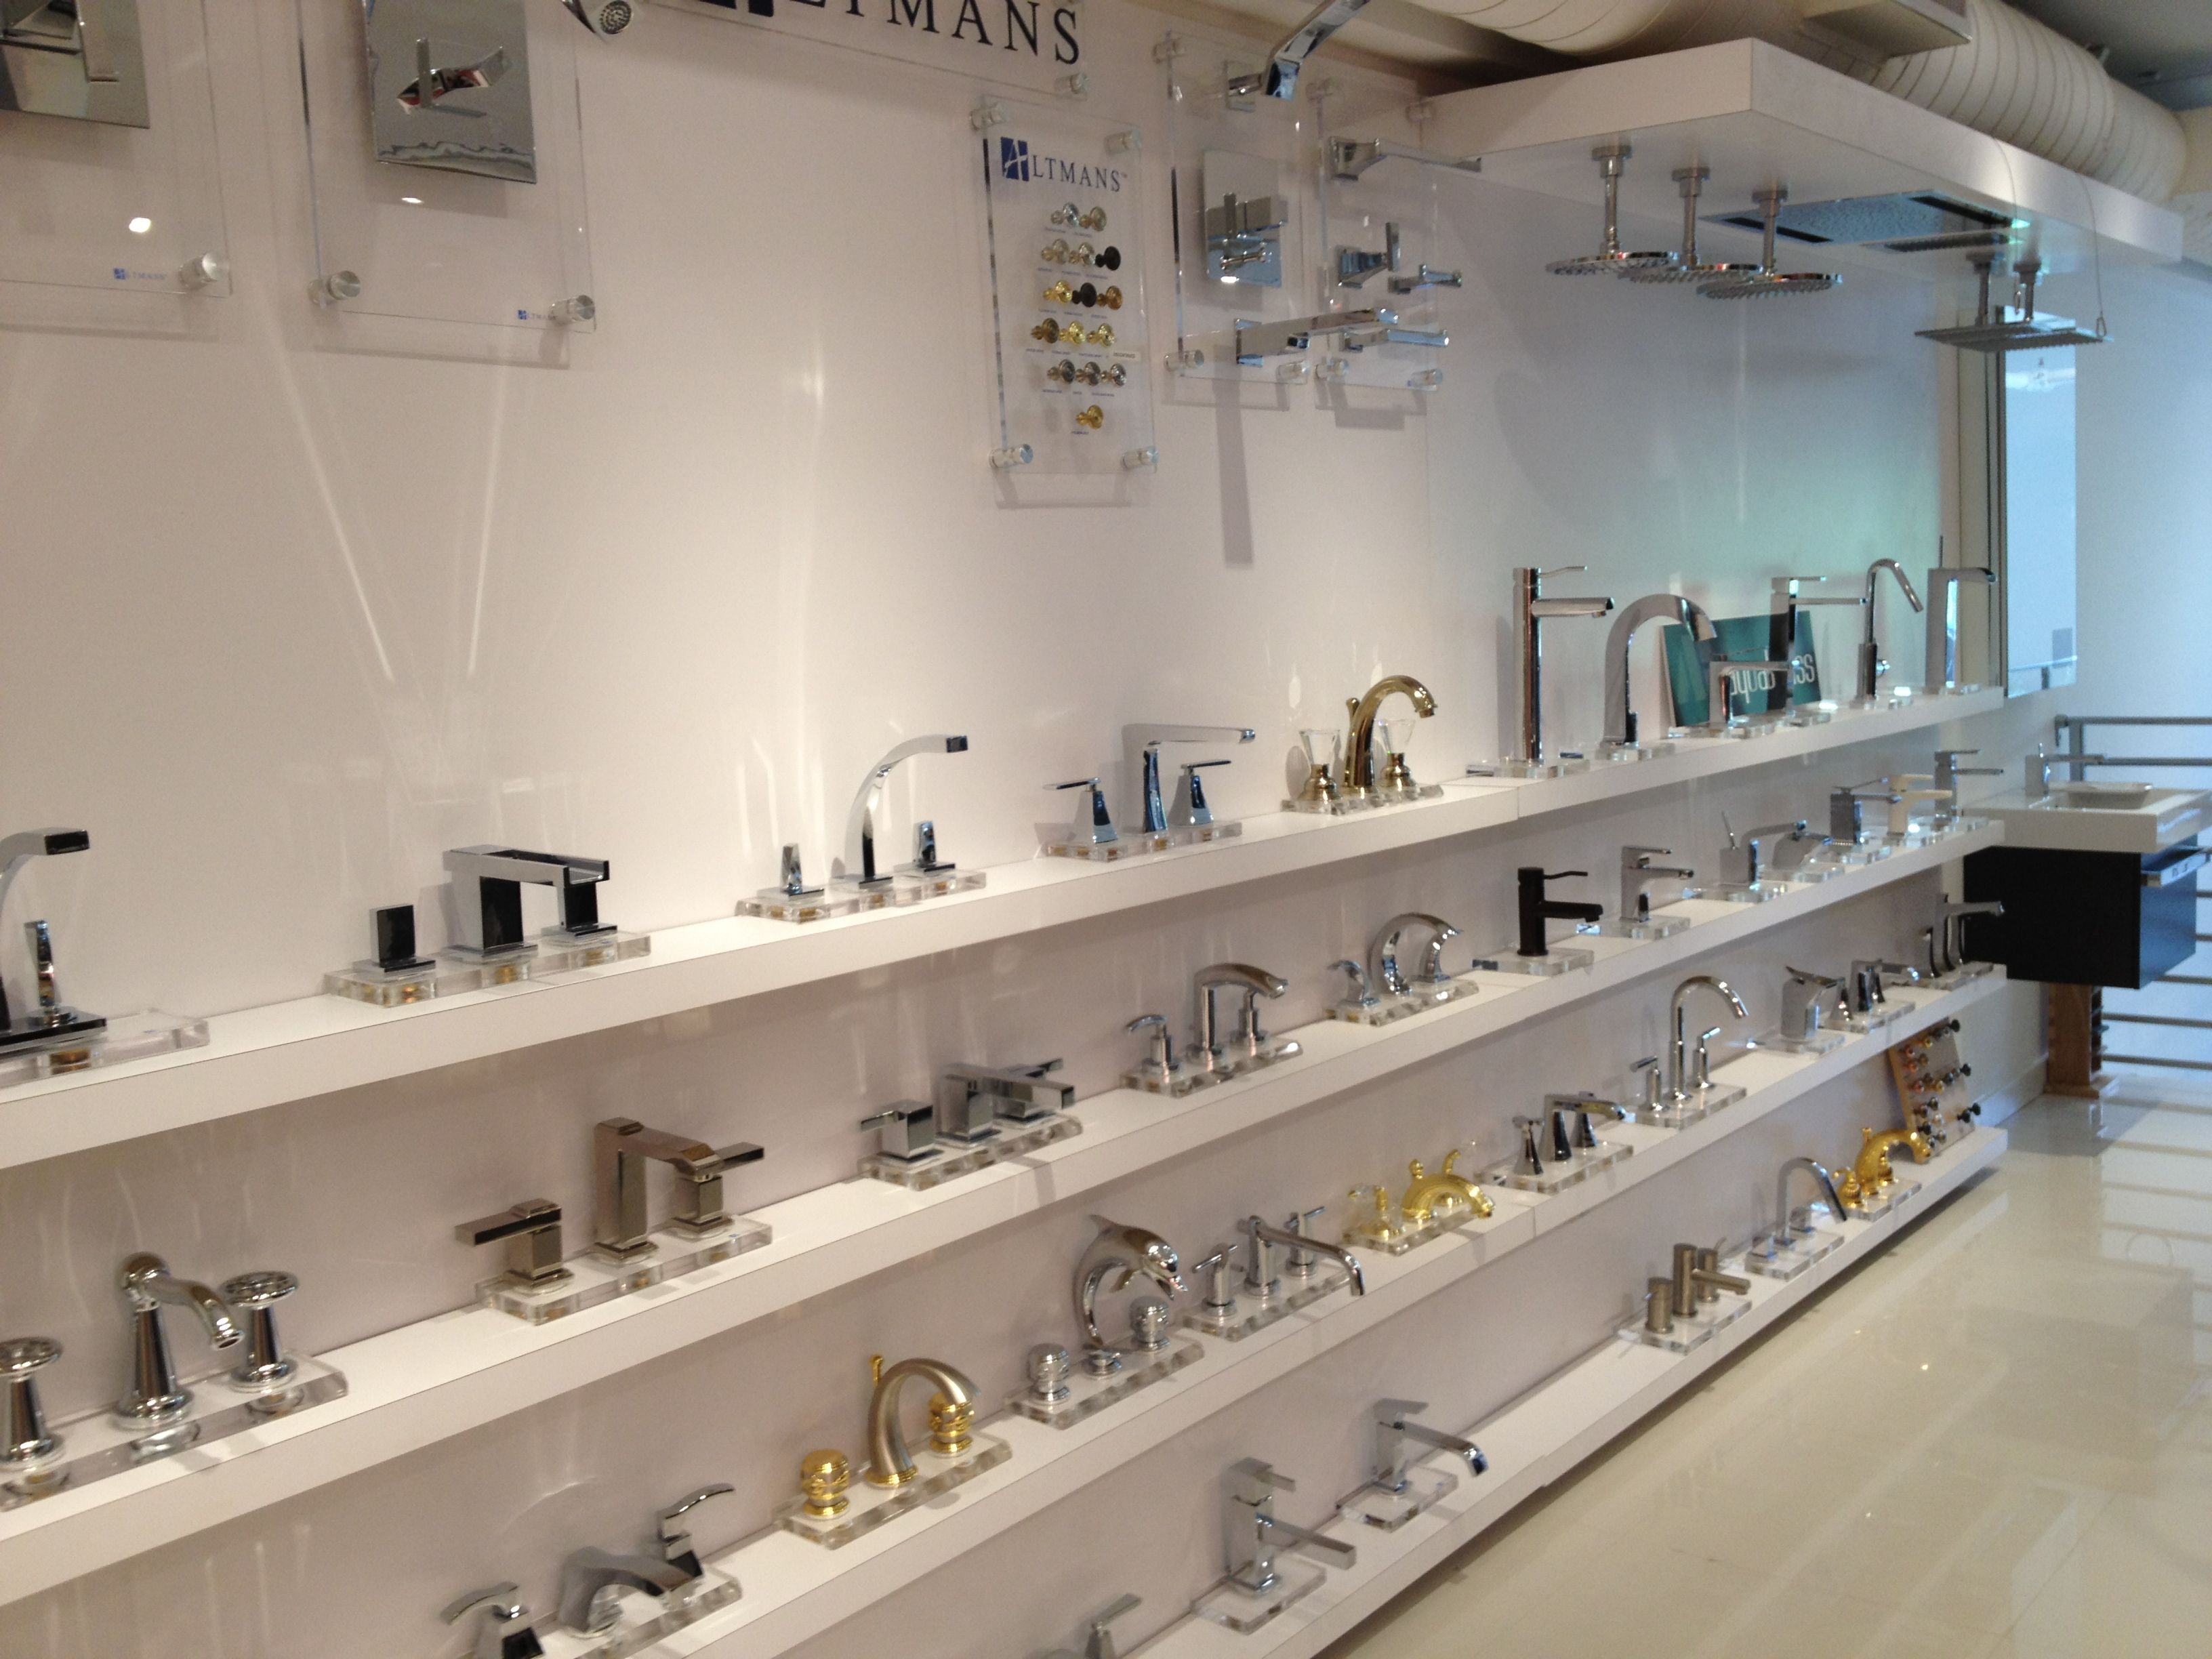 Bathroom Fixtures Miami aquabrass & altmans display at our new showroom in the miami